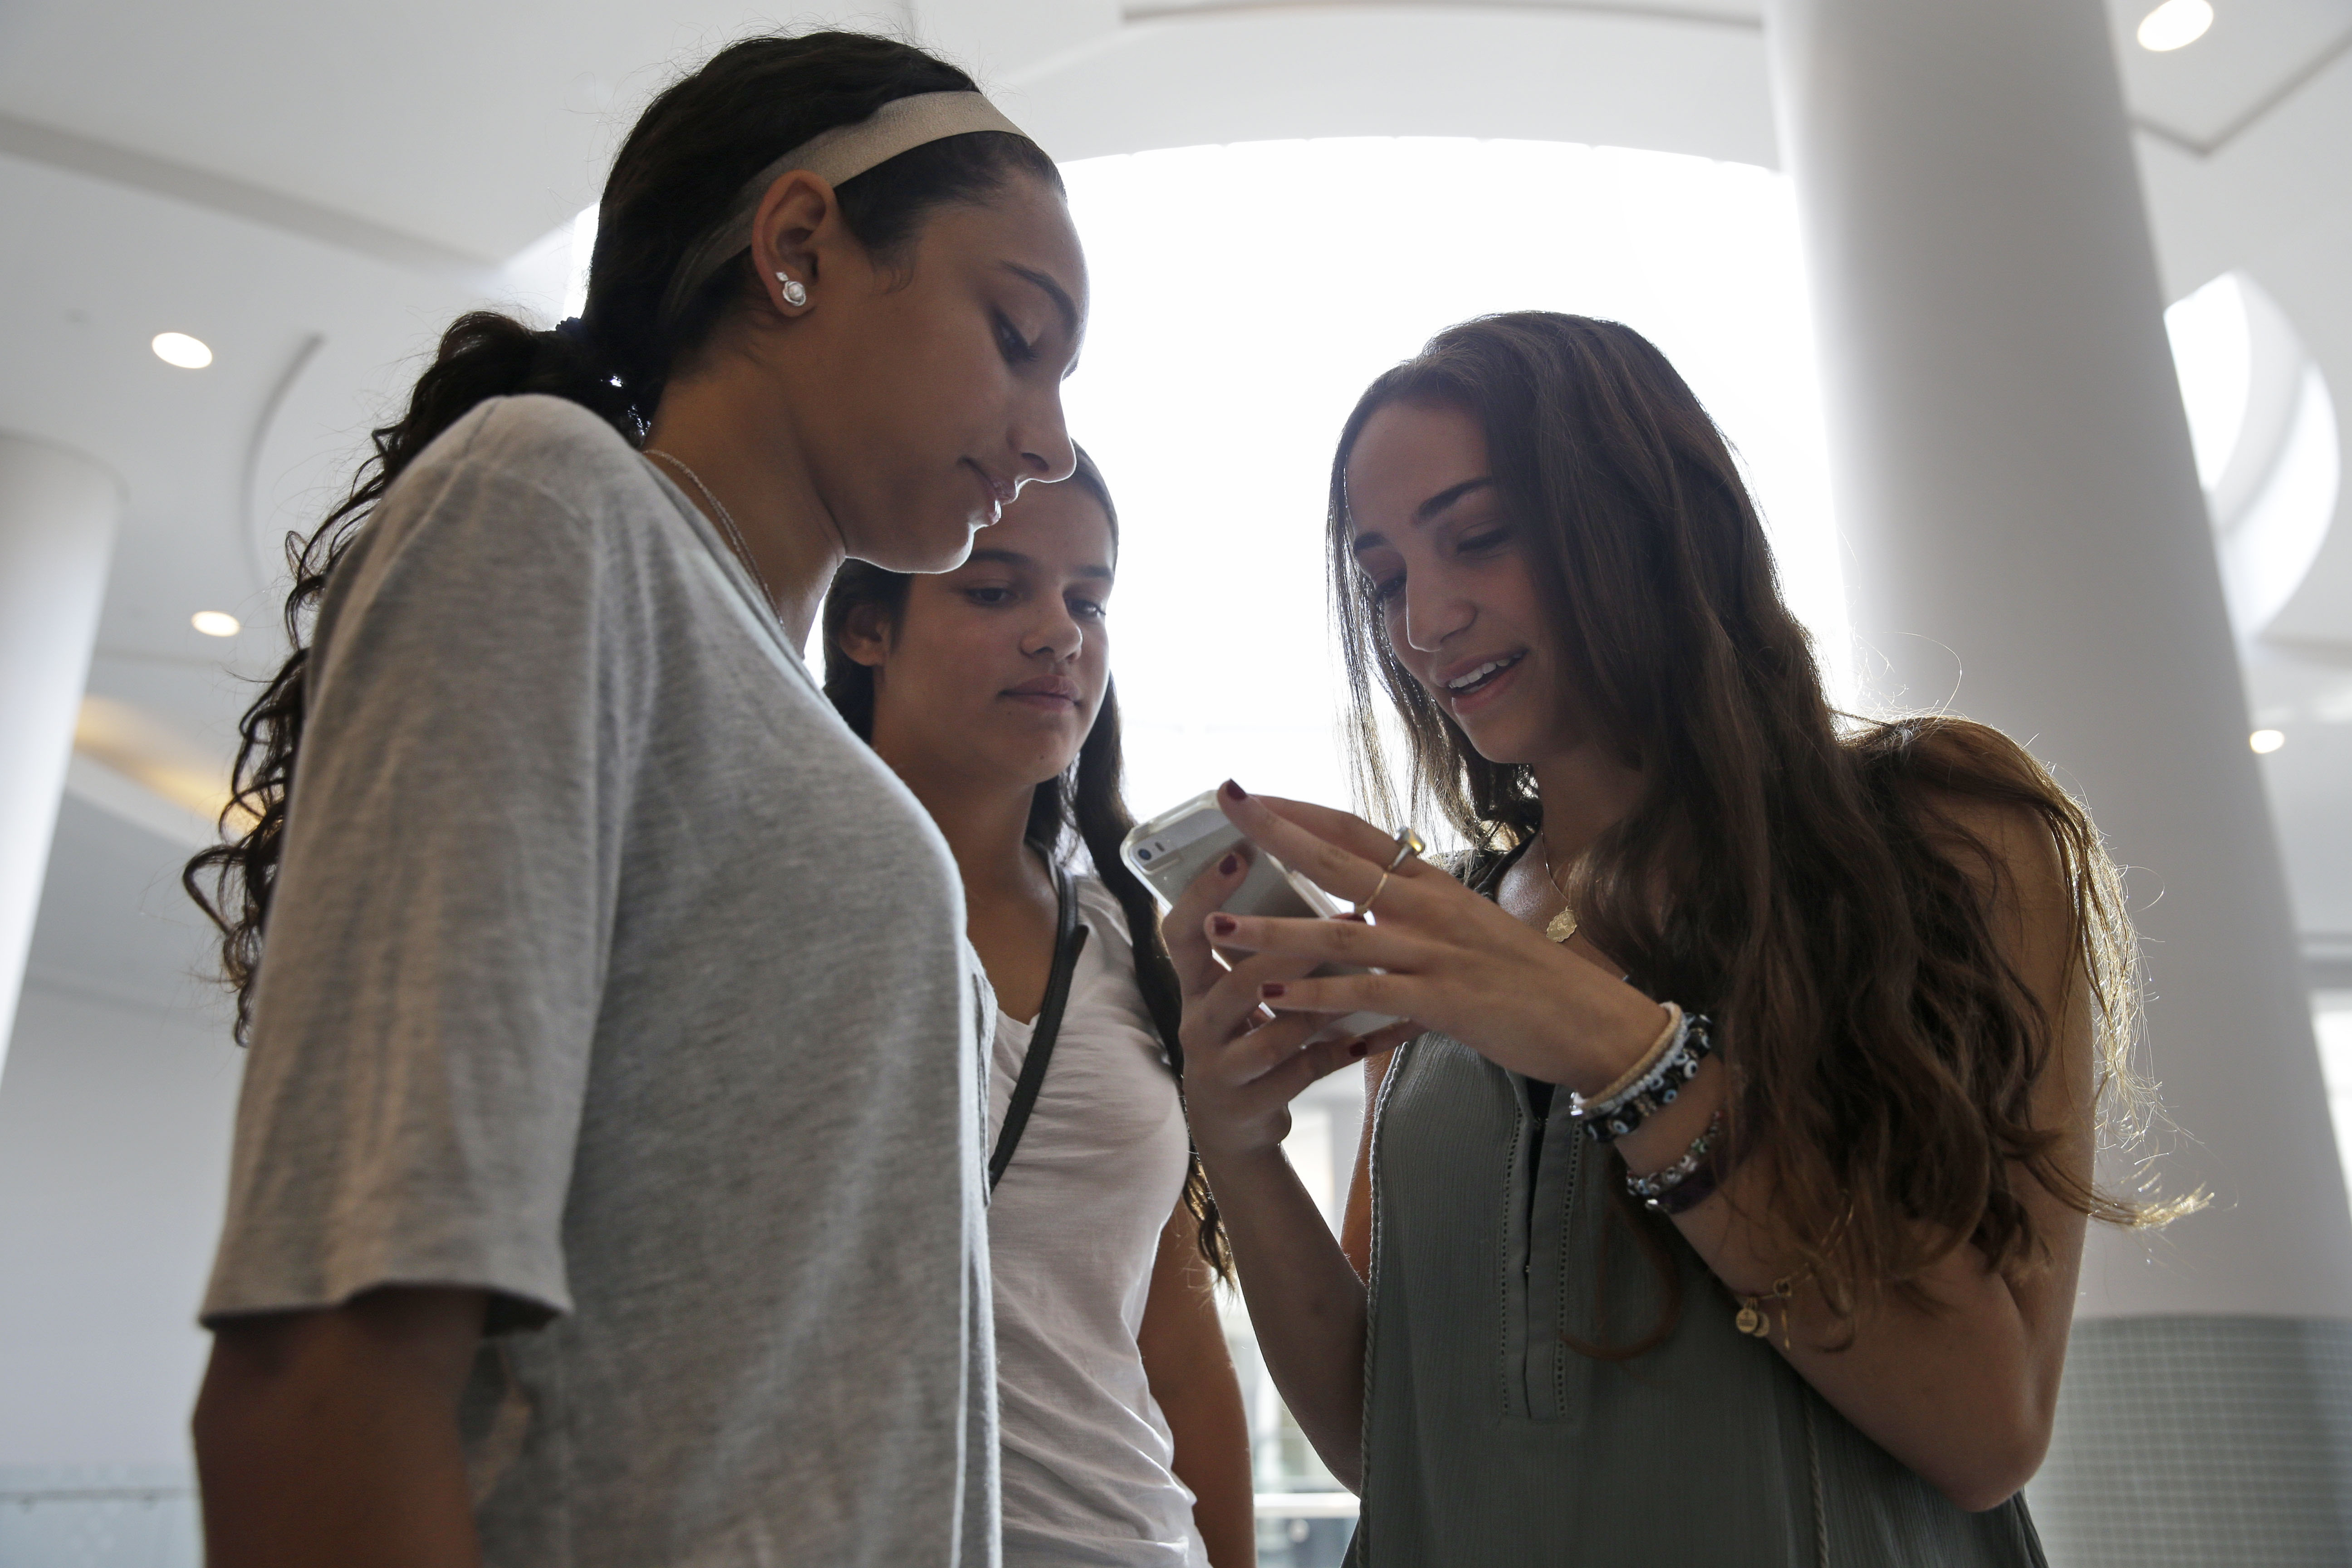 FILE - Giulia Pugliese, 15 (R) posts a picture to Snapchat while her friends look on at Roosevelt Field shopping mall in Garden City, N.Y., July 27, 2015. (AP)